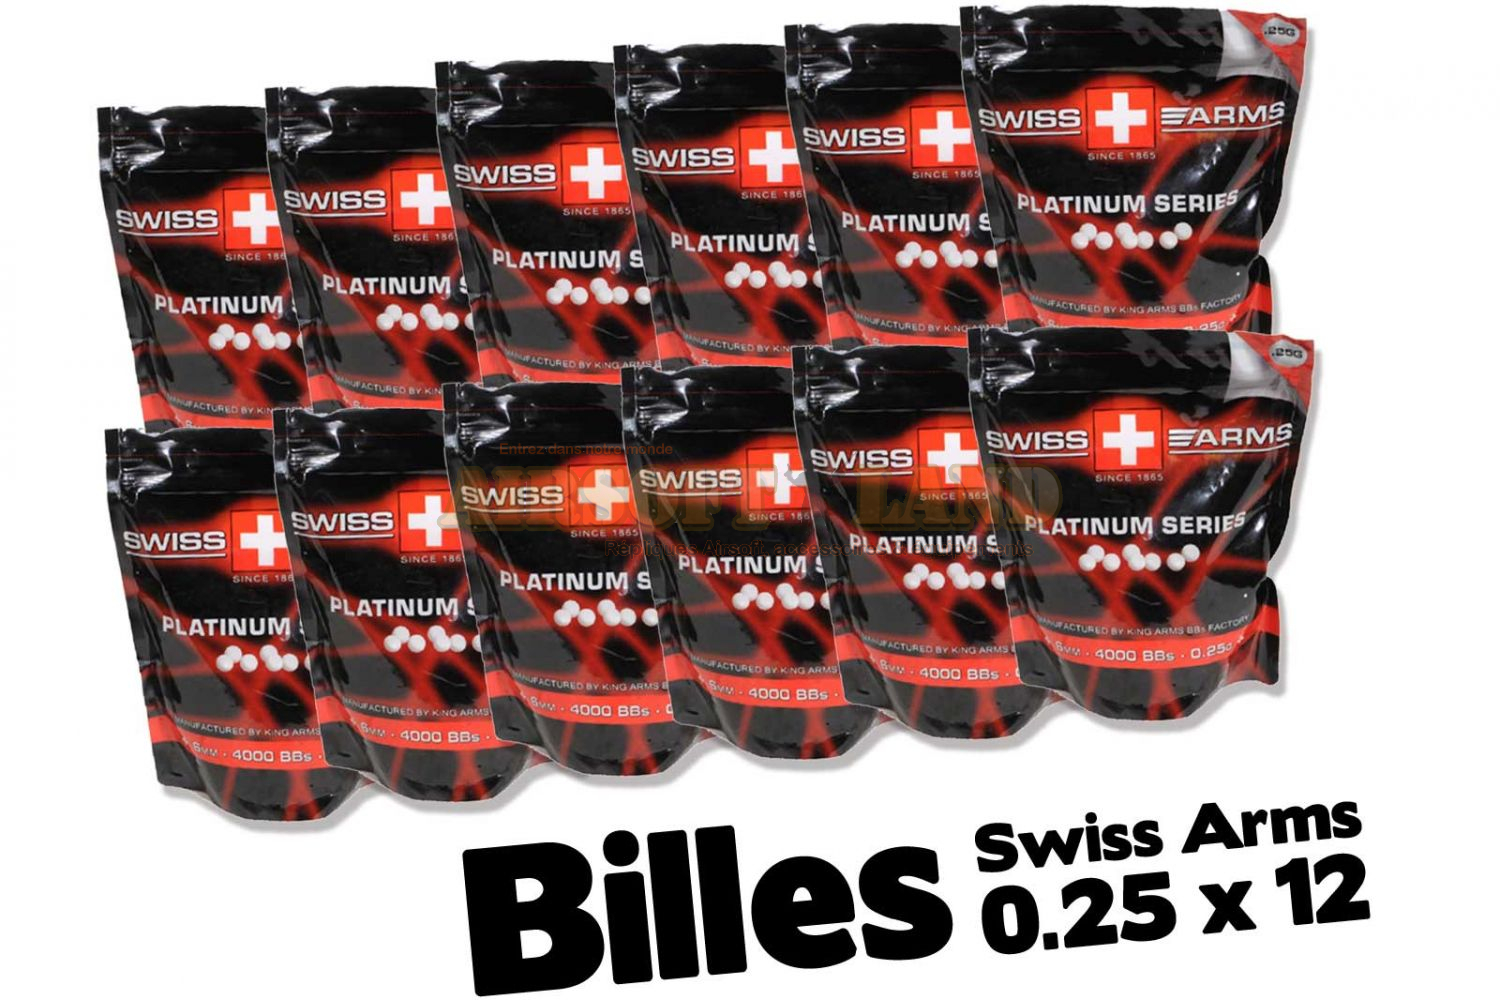 billes 0.25g king arms x 12